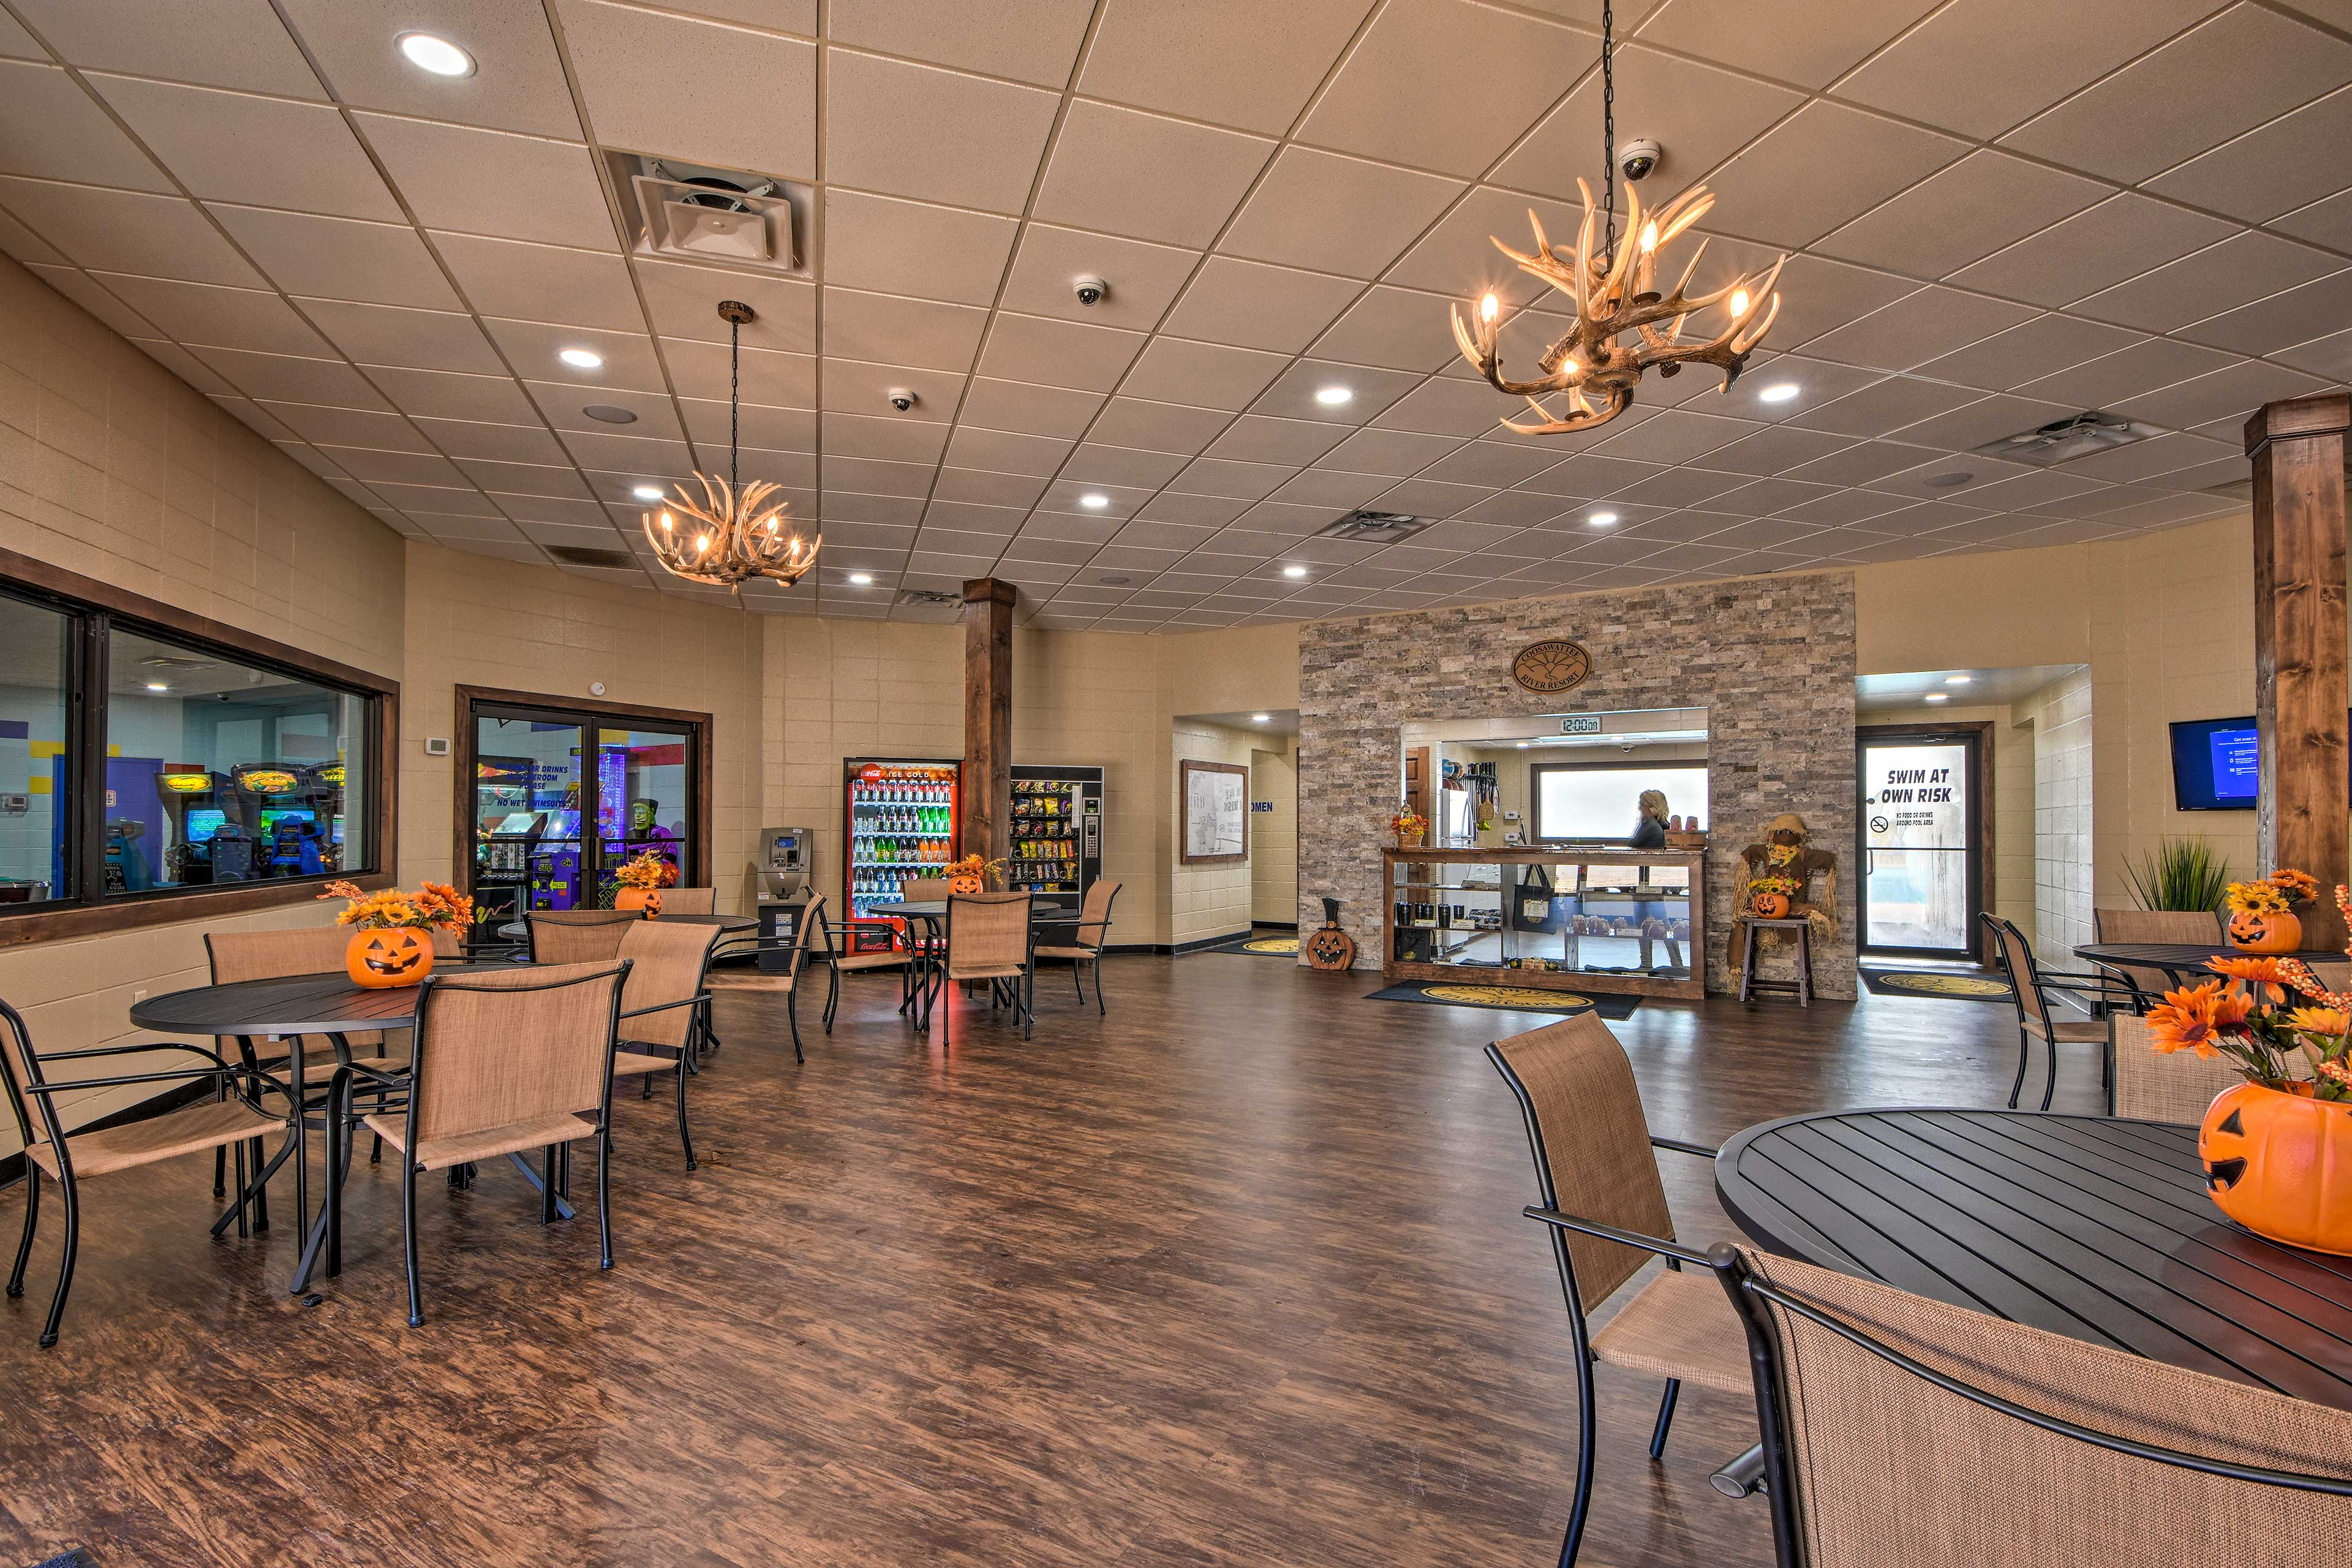 Mingle with residents and visitors in this indoor space.